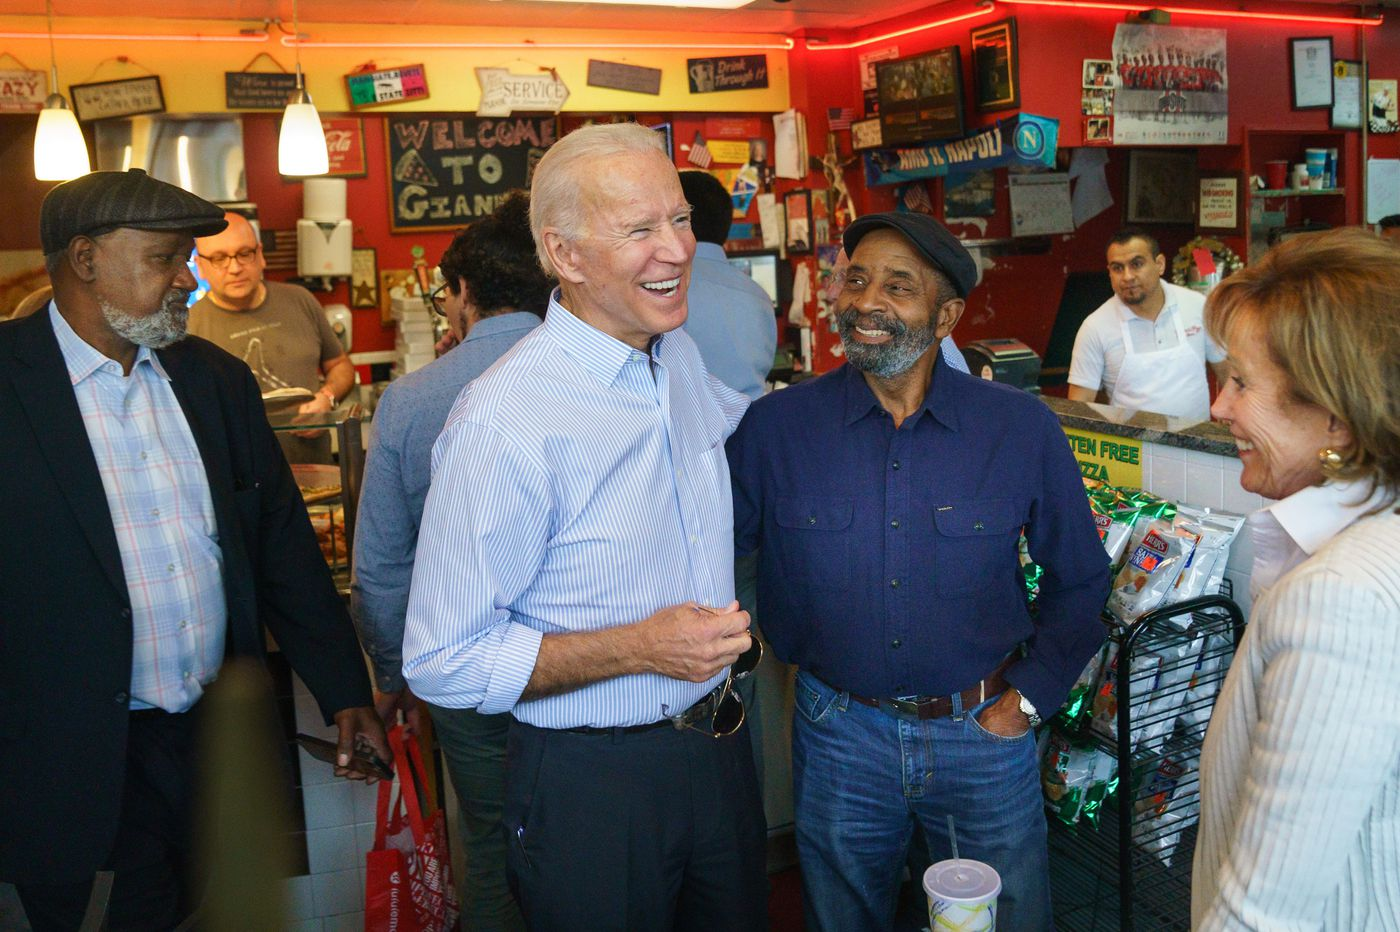 Joe Biden chooses Philadelphia for 2020 presidential campaign headquarters